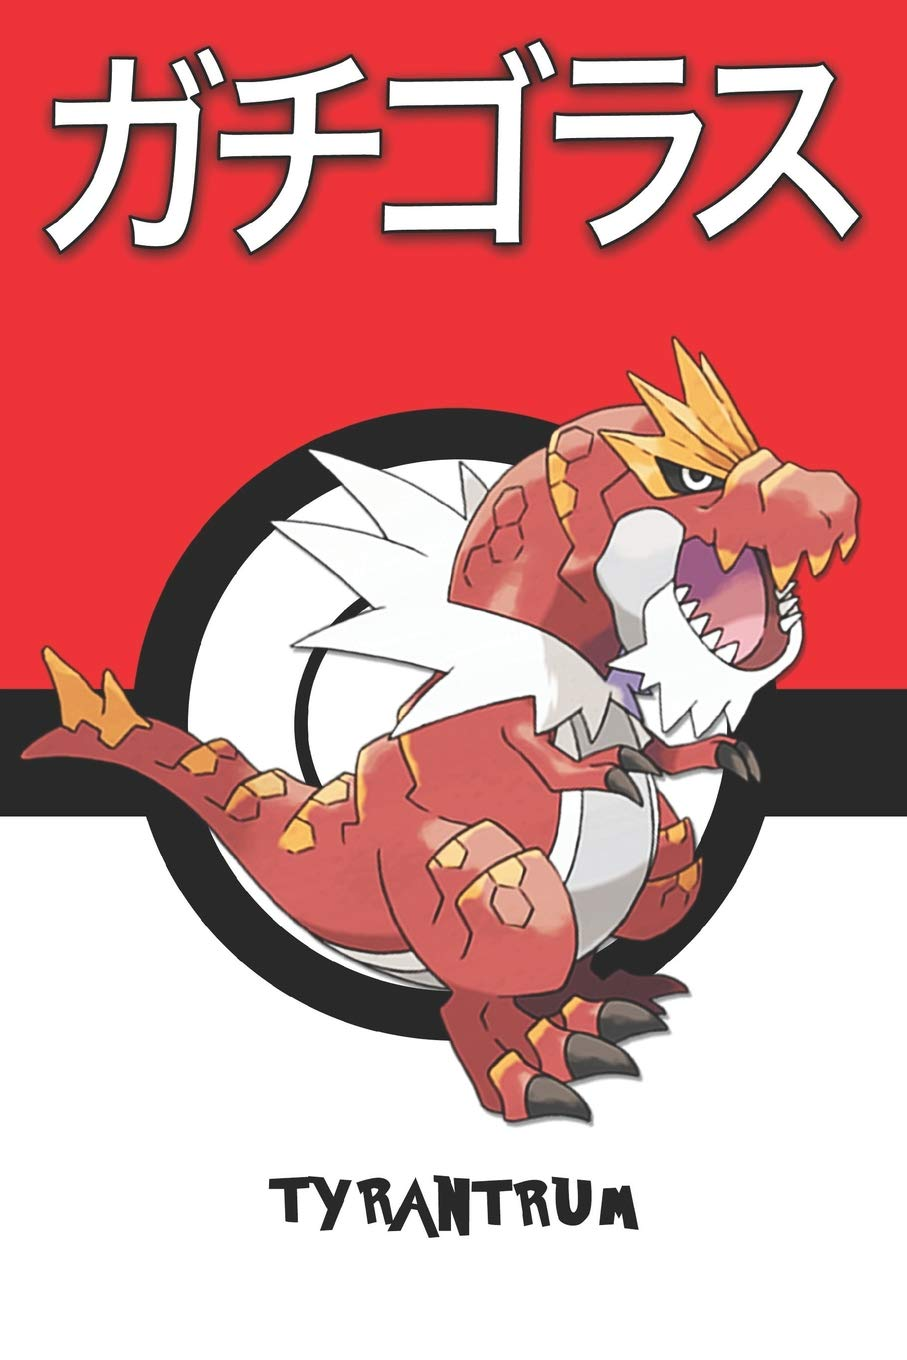 Tyrantrum ガチゴラス Pokemon Notebook Blank Lined Journal